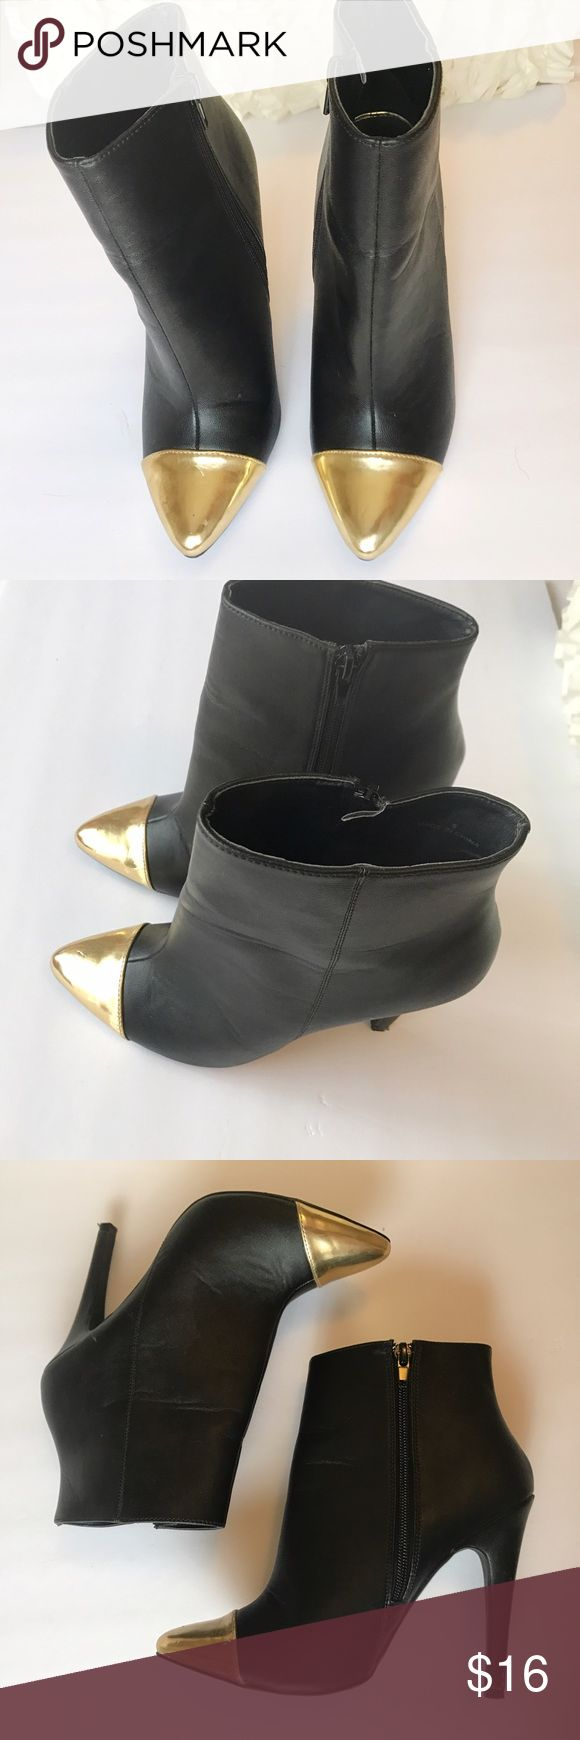 ASOS gold cap toe booties Gorgeous ASOS gold cap toe ankle booties. Worn a couple of times. The gold has some scratches. Perfect with jeans or even dresses and tights. The perfect color combination ASOS Shoes Ankle Boots & Booties